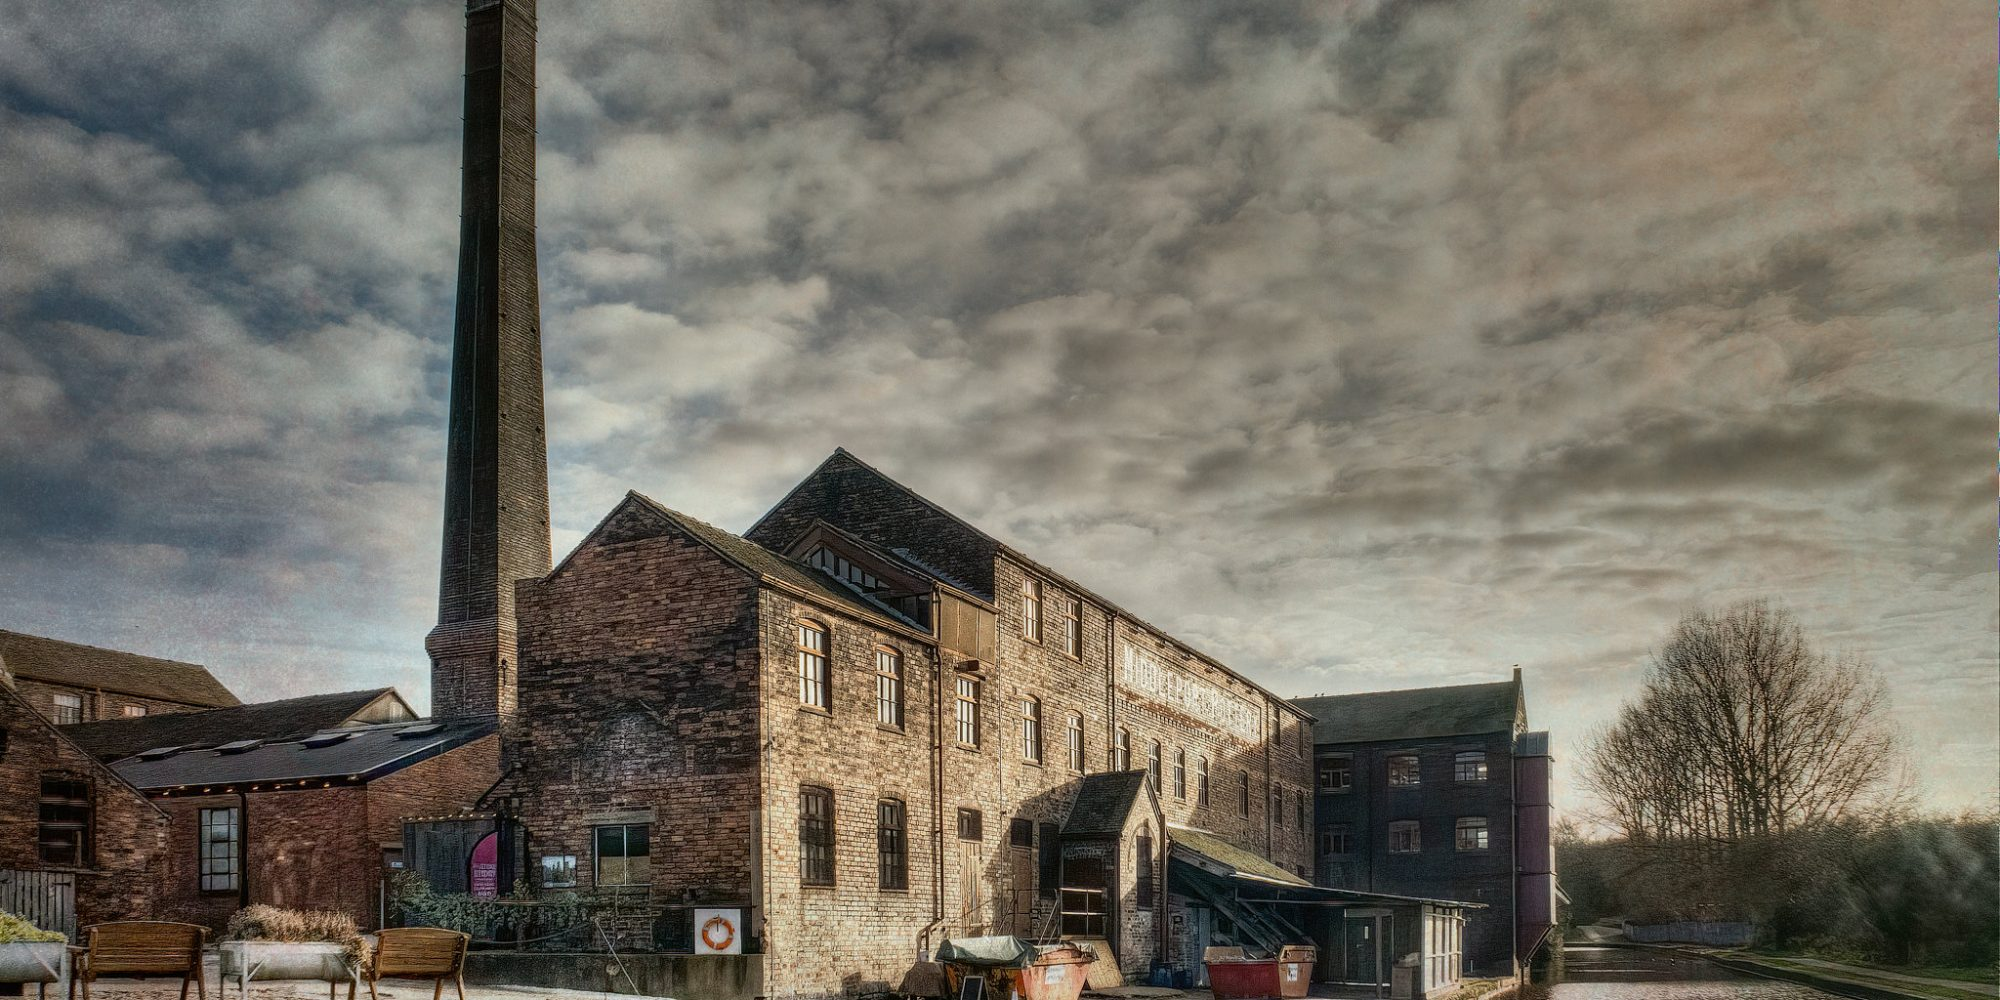 Old red bricked factory building, with tall chimney next to a river